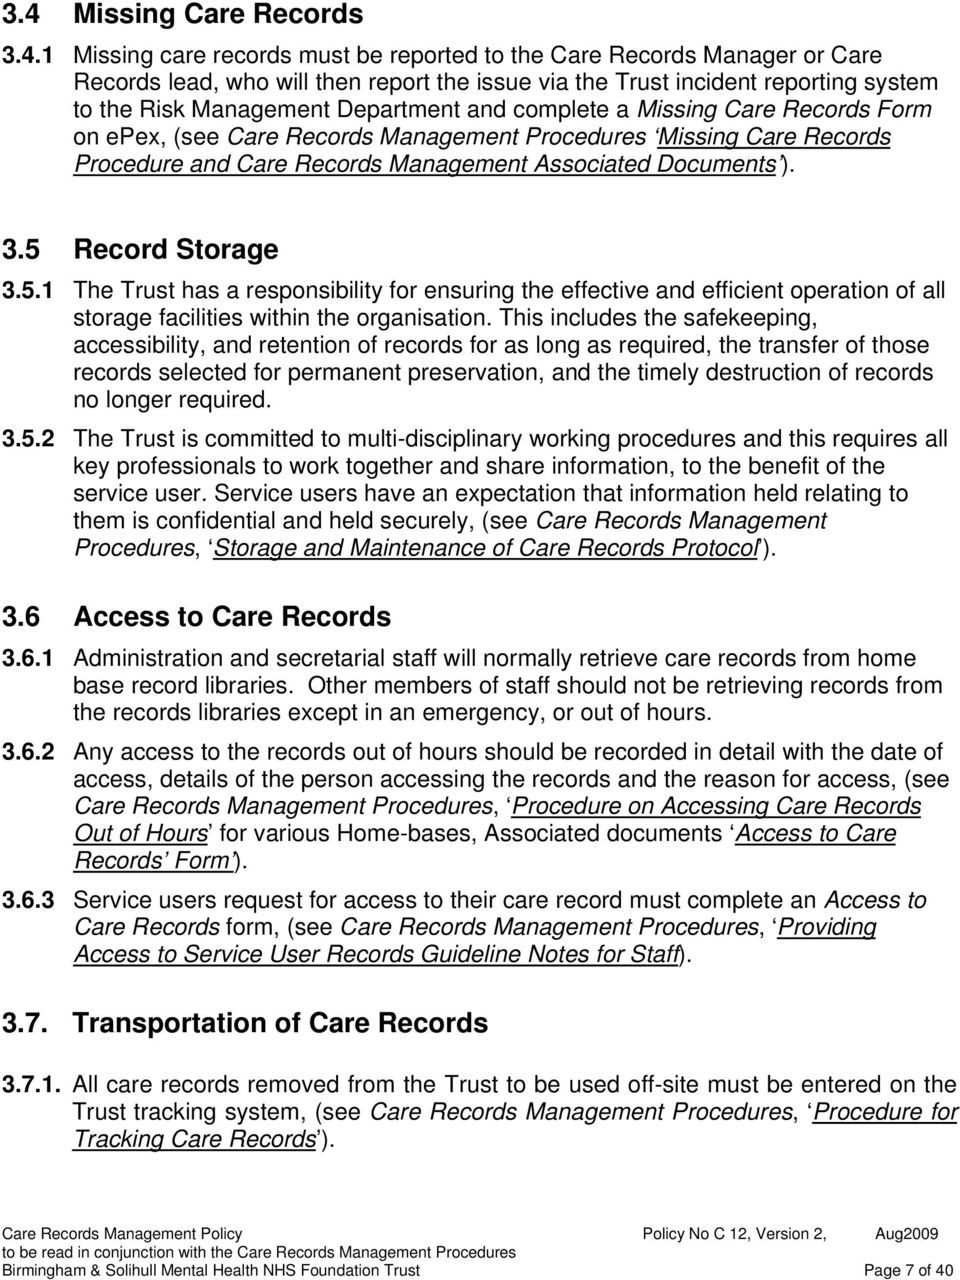 Care Records Management Policy Pdf